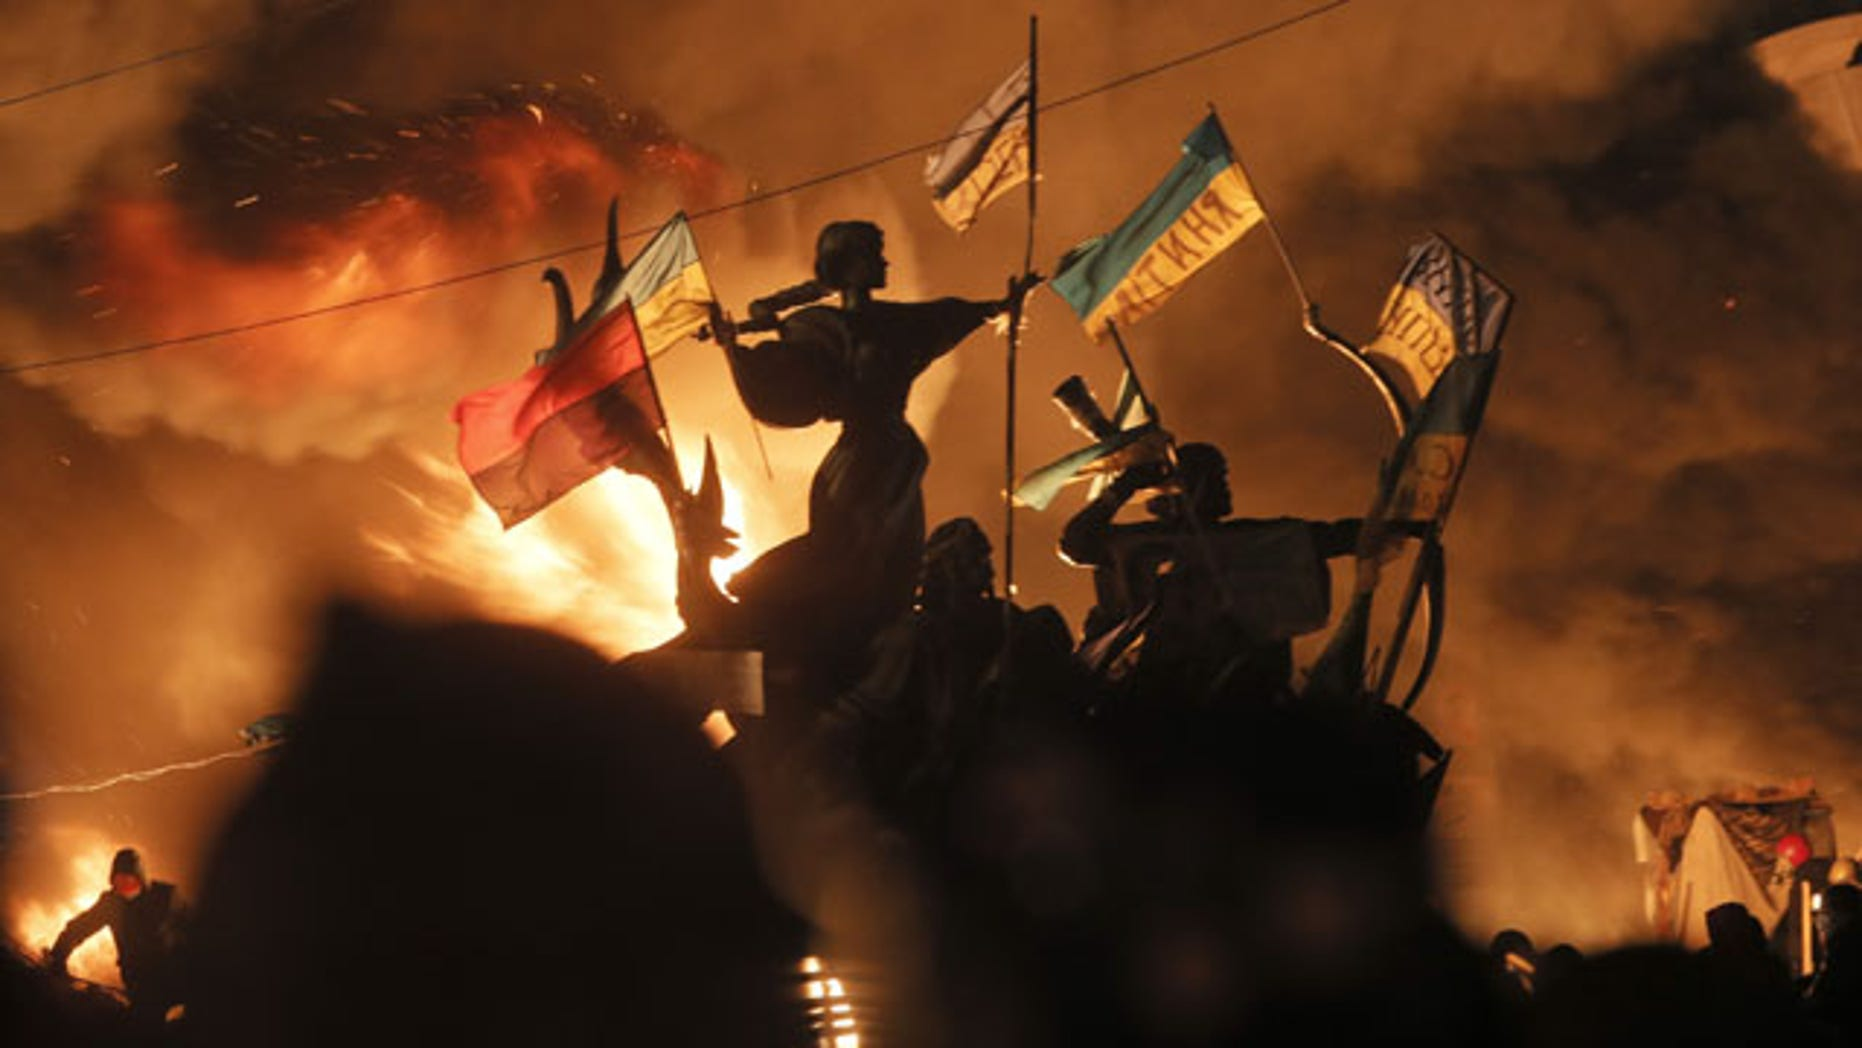 February 18, 2014: Monuments to Kiev's founders burn as anti-government protesters clash with riot police in Independence Square, the epicenter of Ukraine's current unrest. (AP)